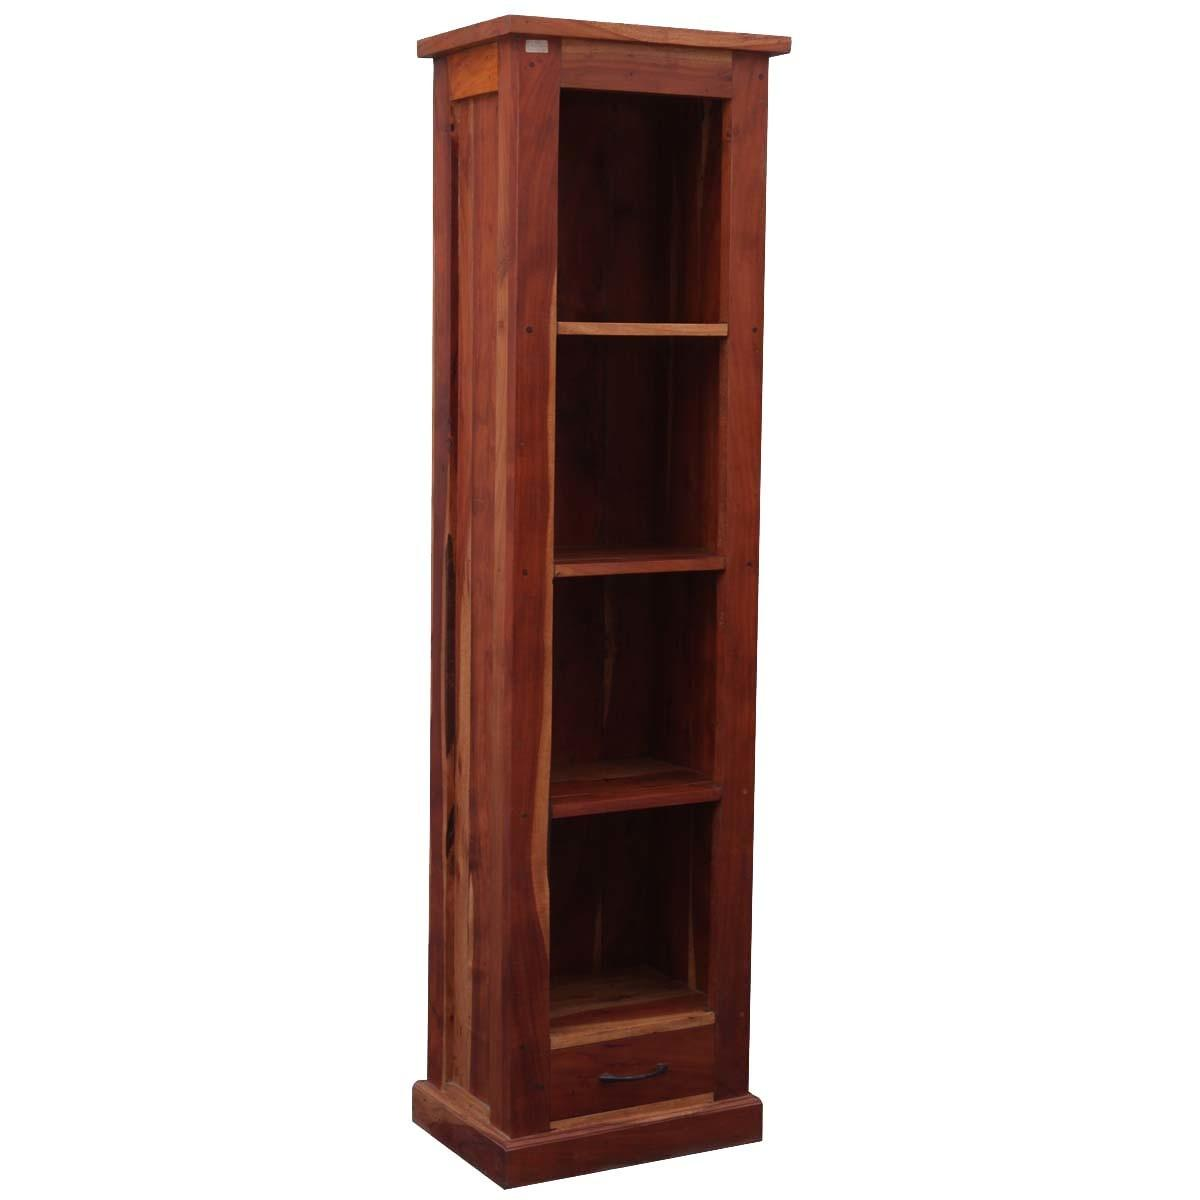 Mission Solid Hardwood Shelf Tower Open Cabinet Bookcase